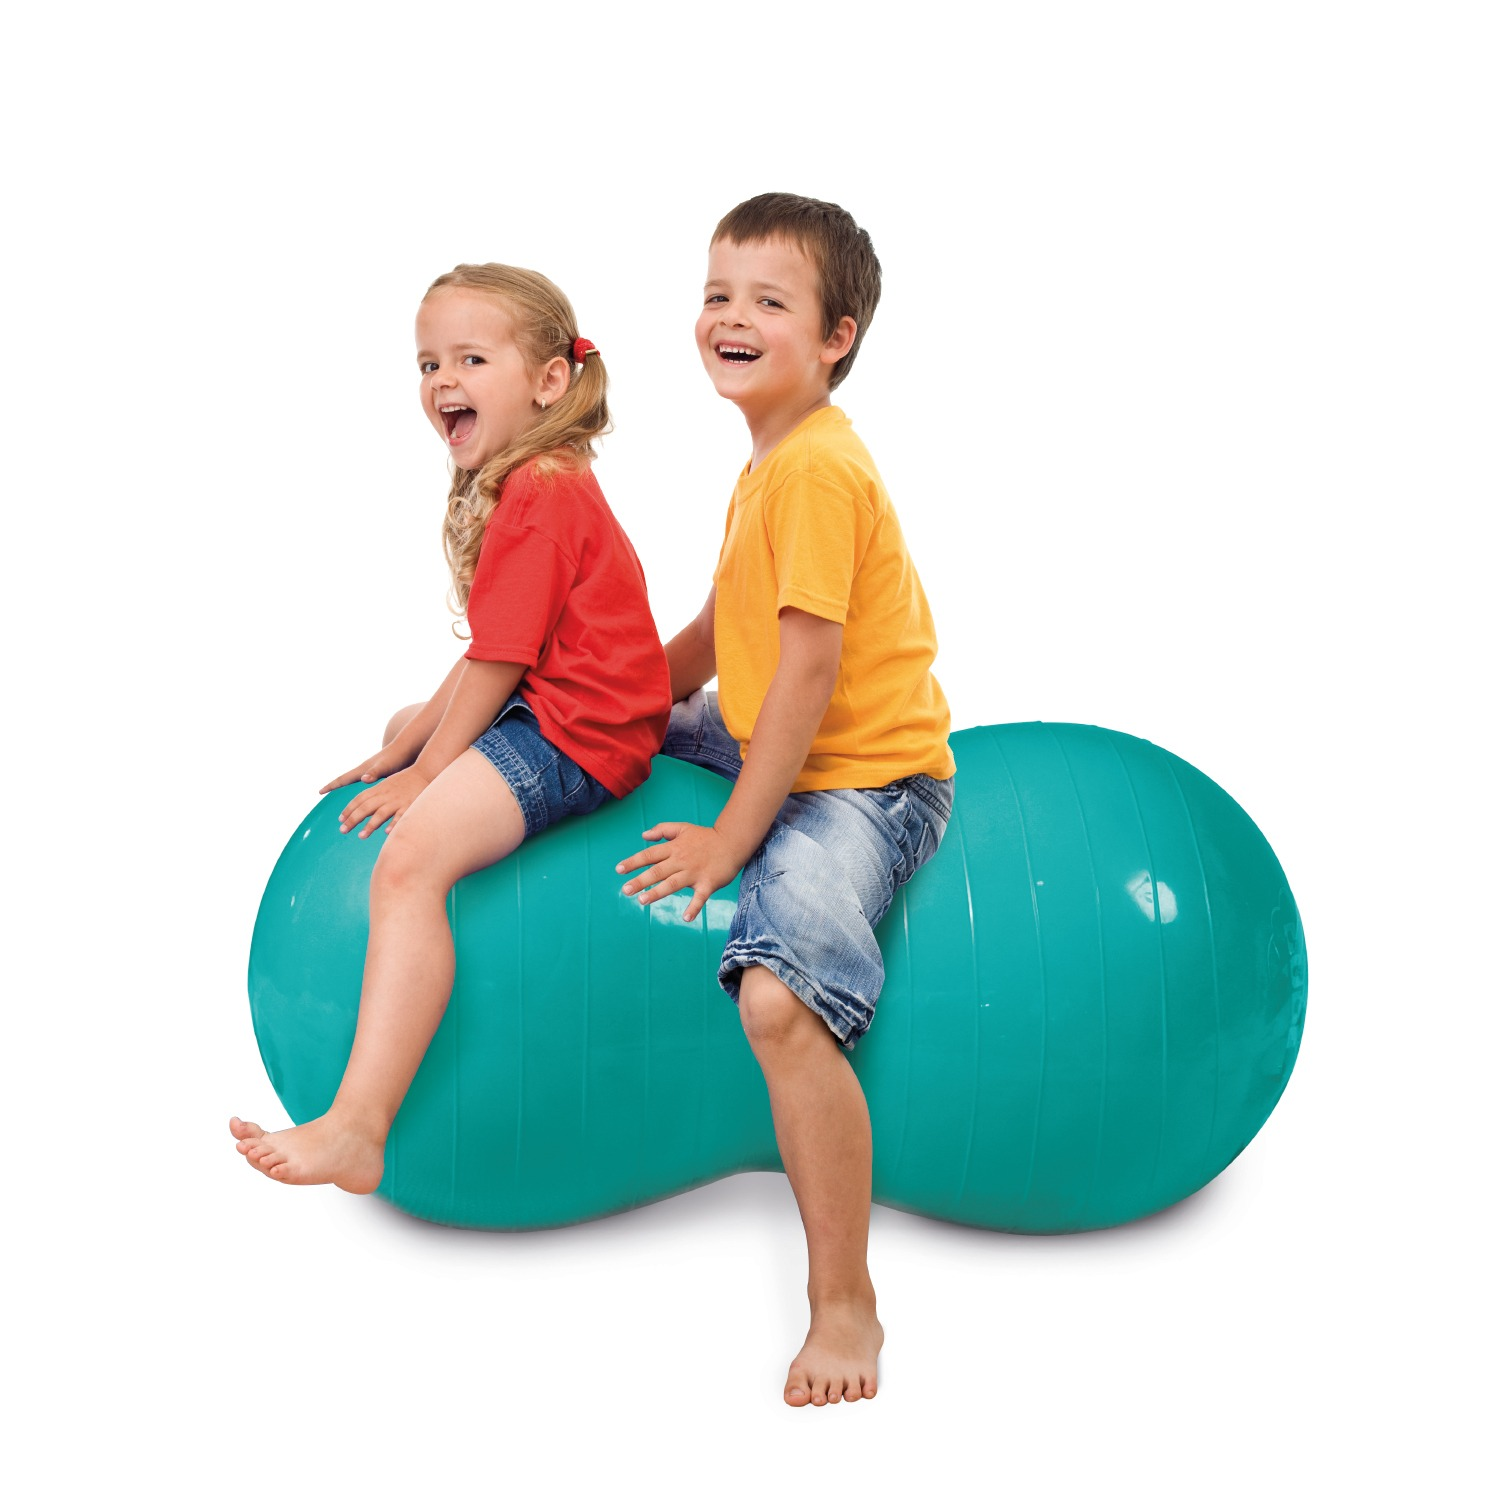 Oval exercise ball